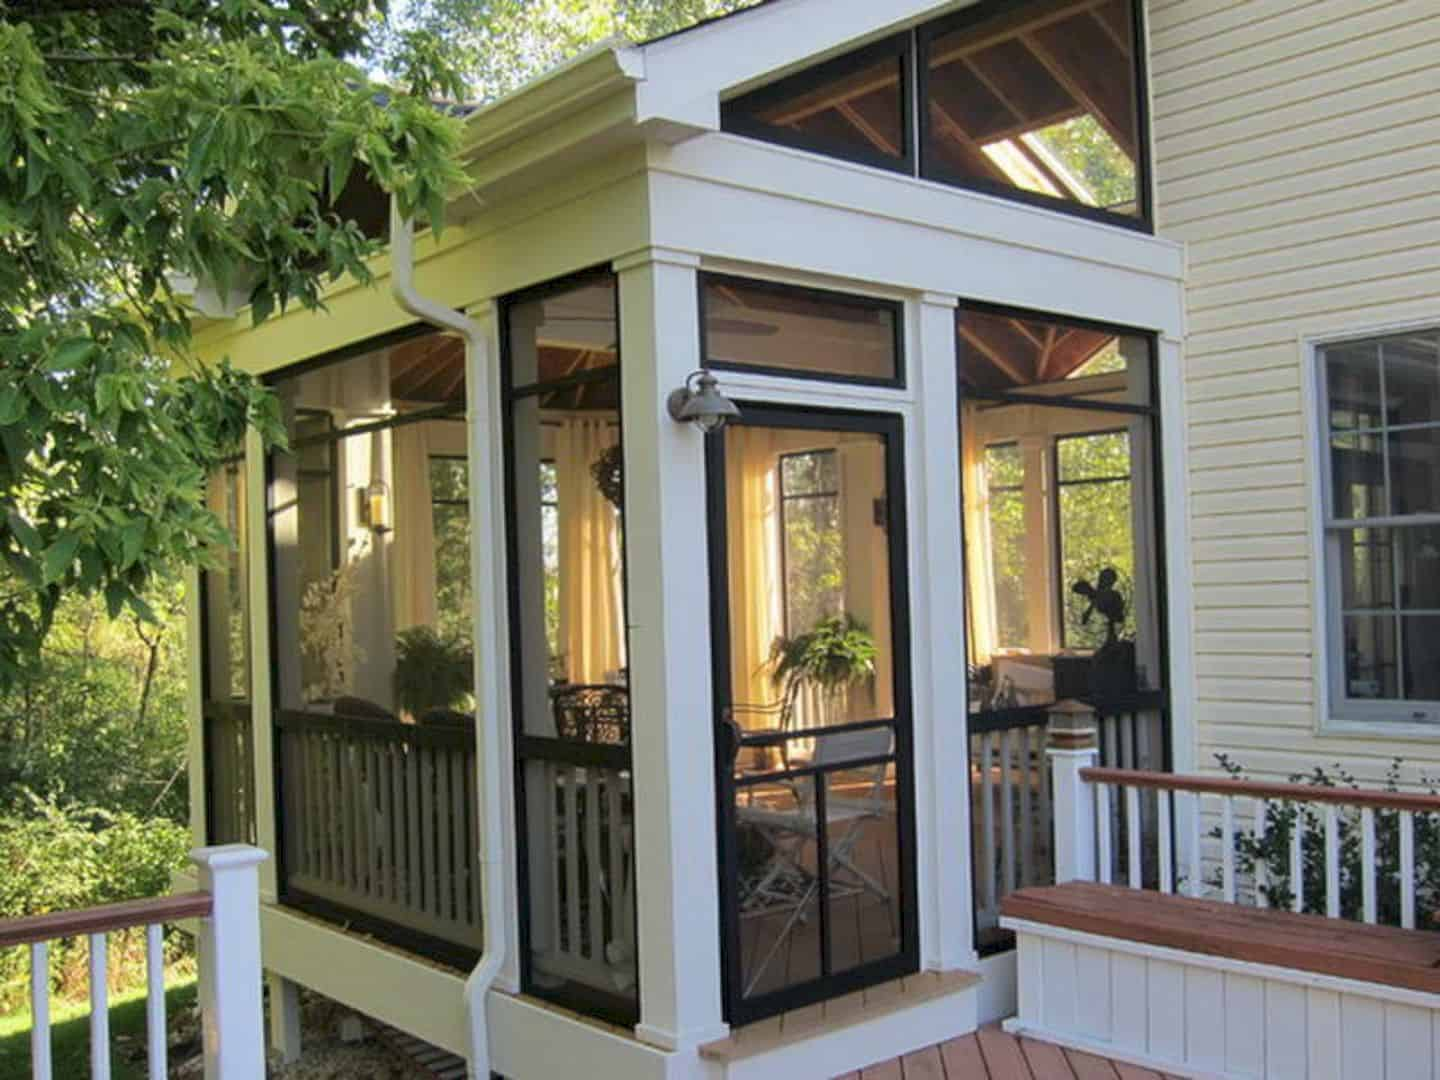 sp1 Great screened porch ideas to inspire you